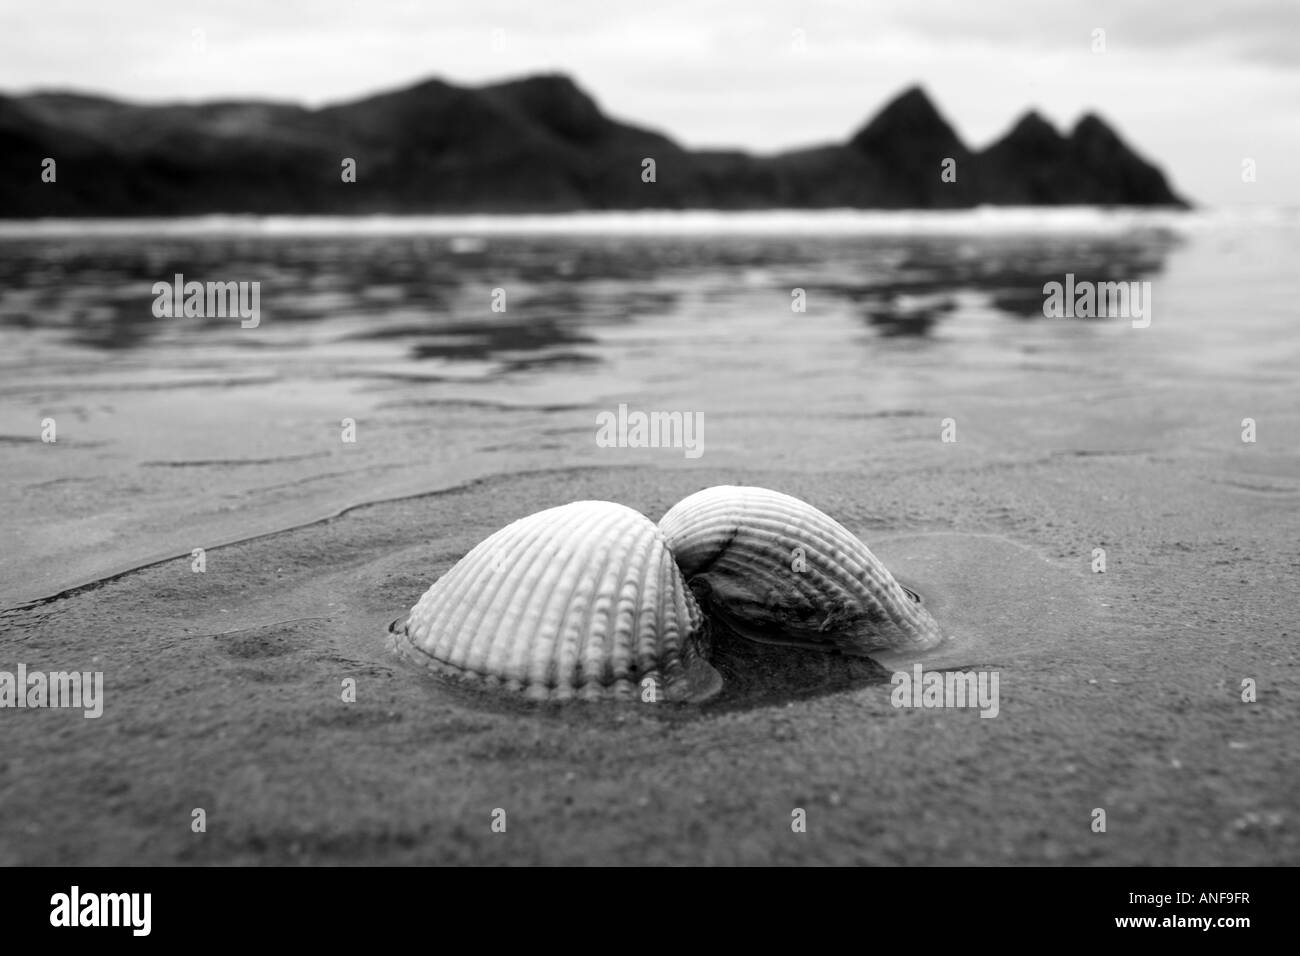 Cockle Shell on the sand 'Three Cliffs Bay' 'Gower peninsula', Wales - Stock Image